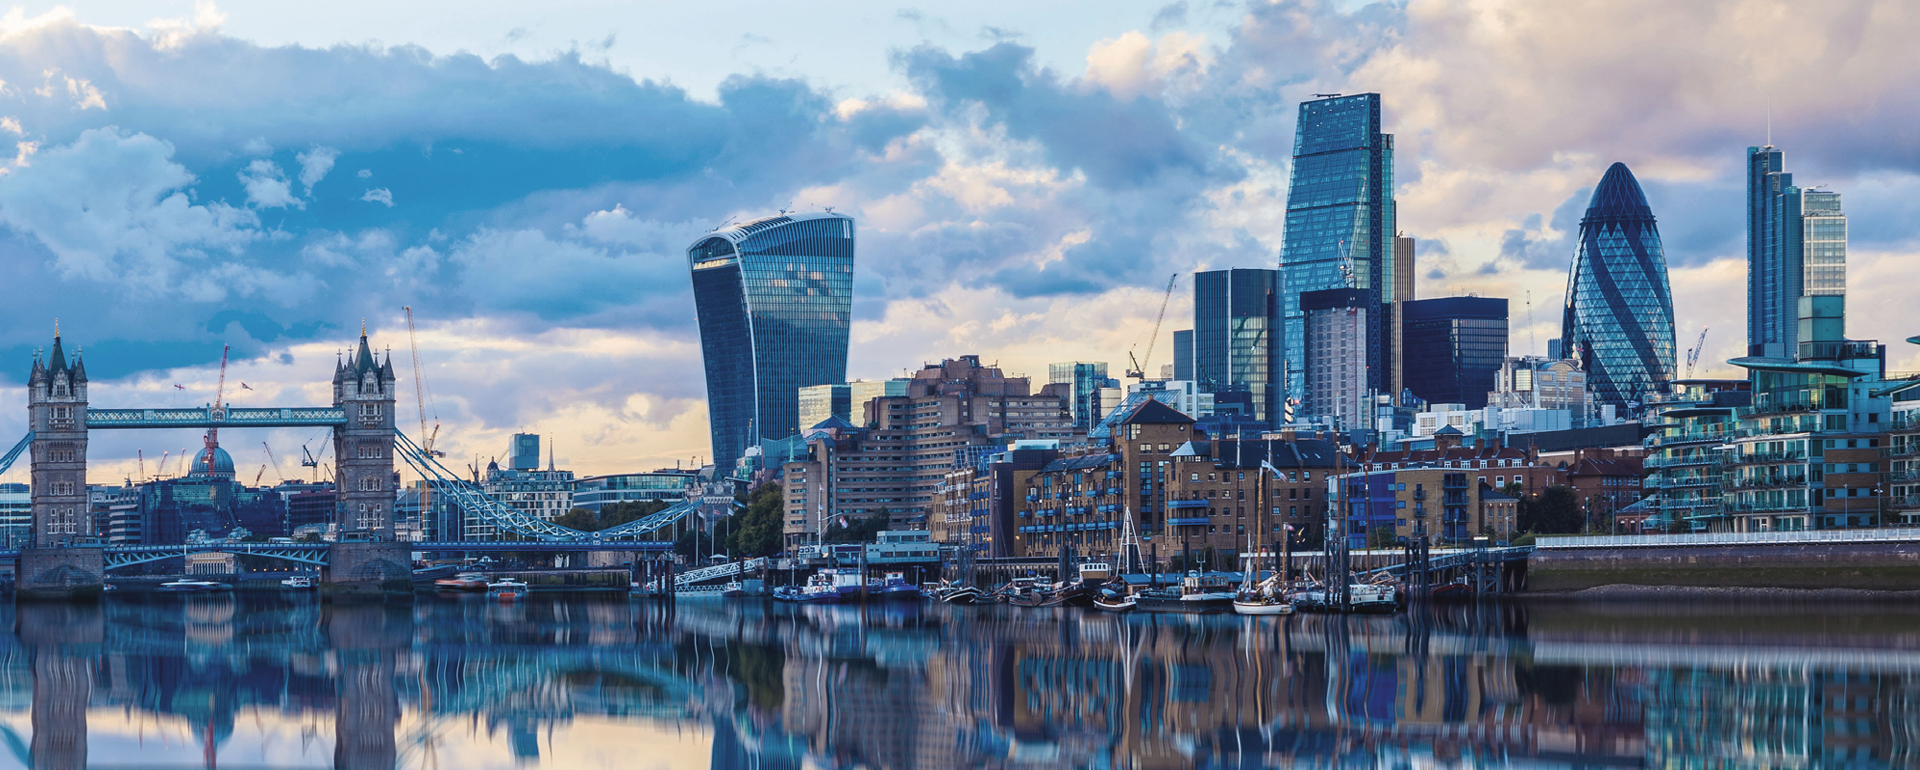 Konica Minolta digital services are helping the City of London Corporation achieve savings of £2.5 million over five years